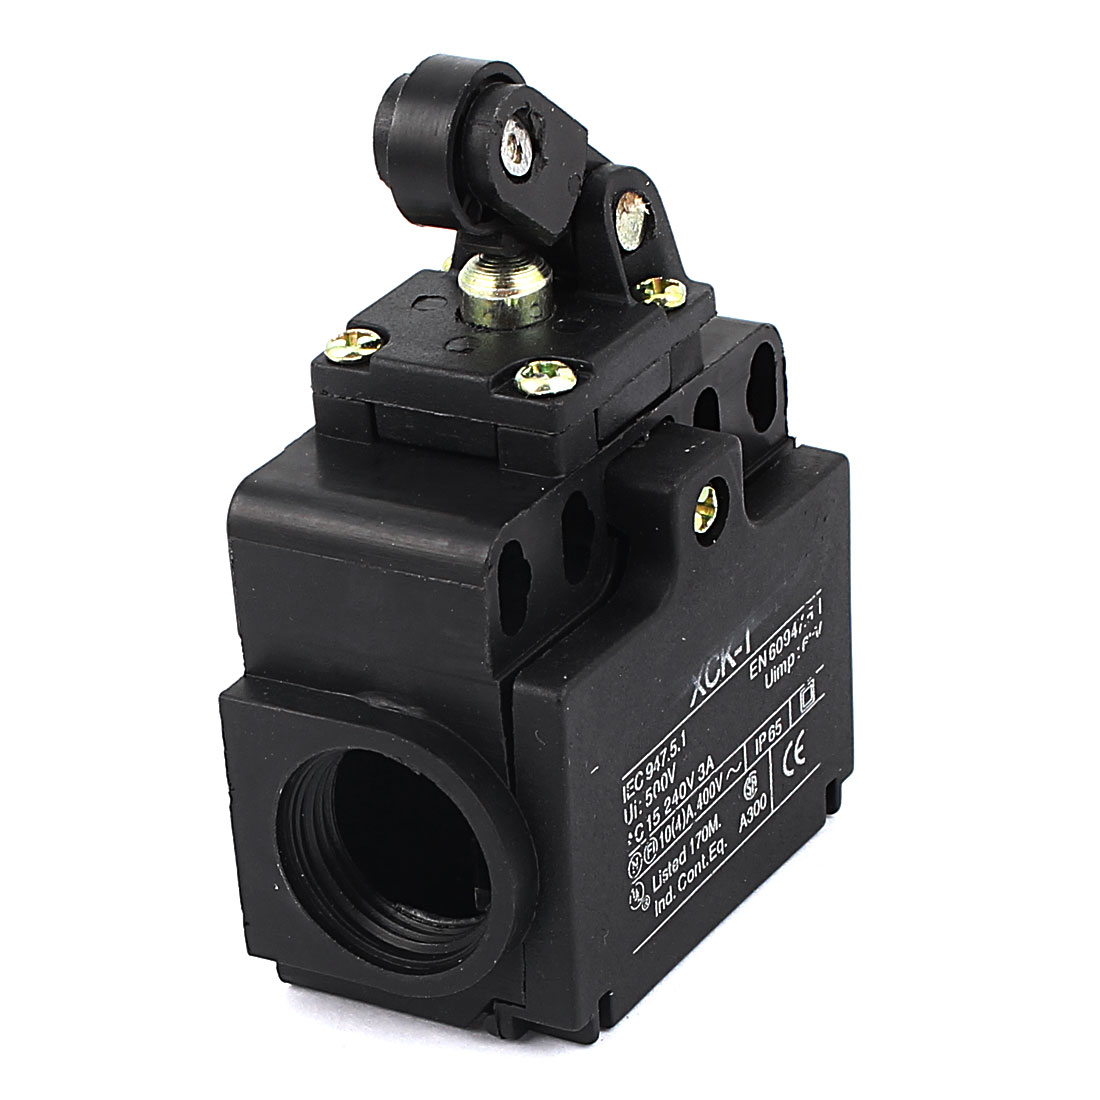 XCK-T 4 Terminal DPST 2 Holes Roller Pushbutton Enclosed Limit Switch